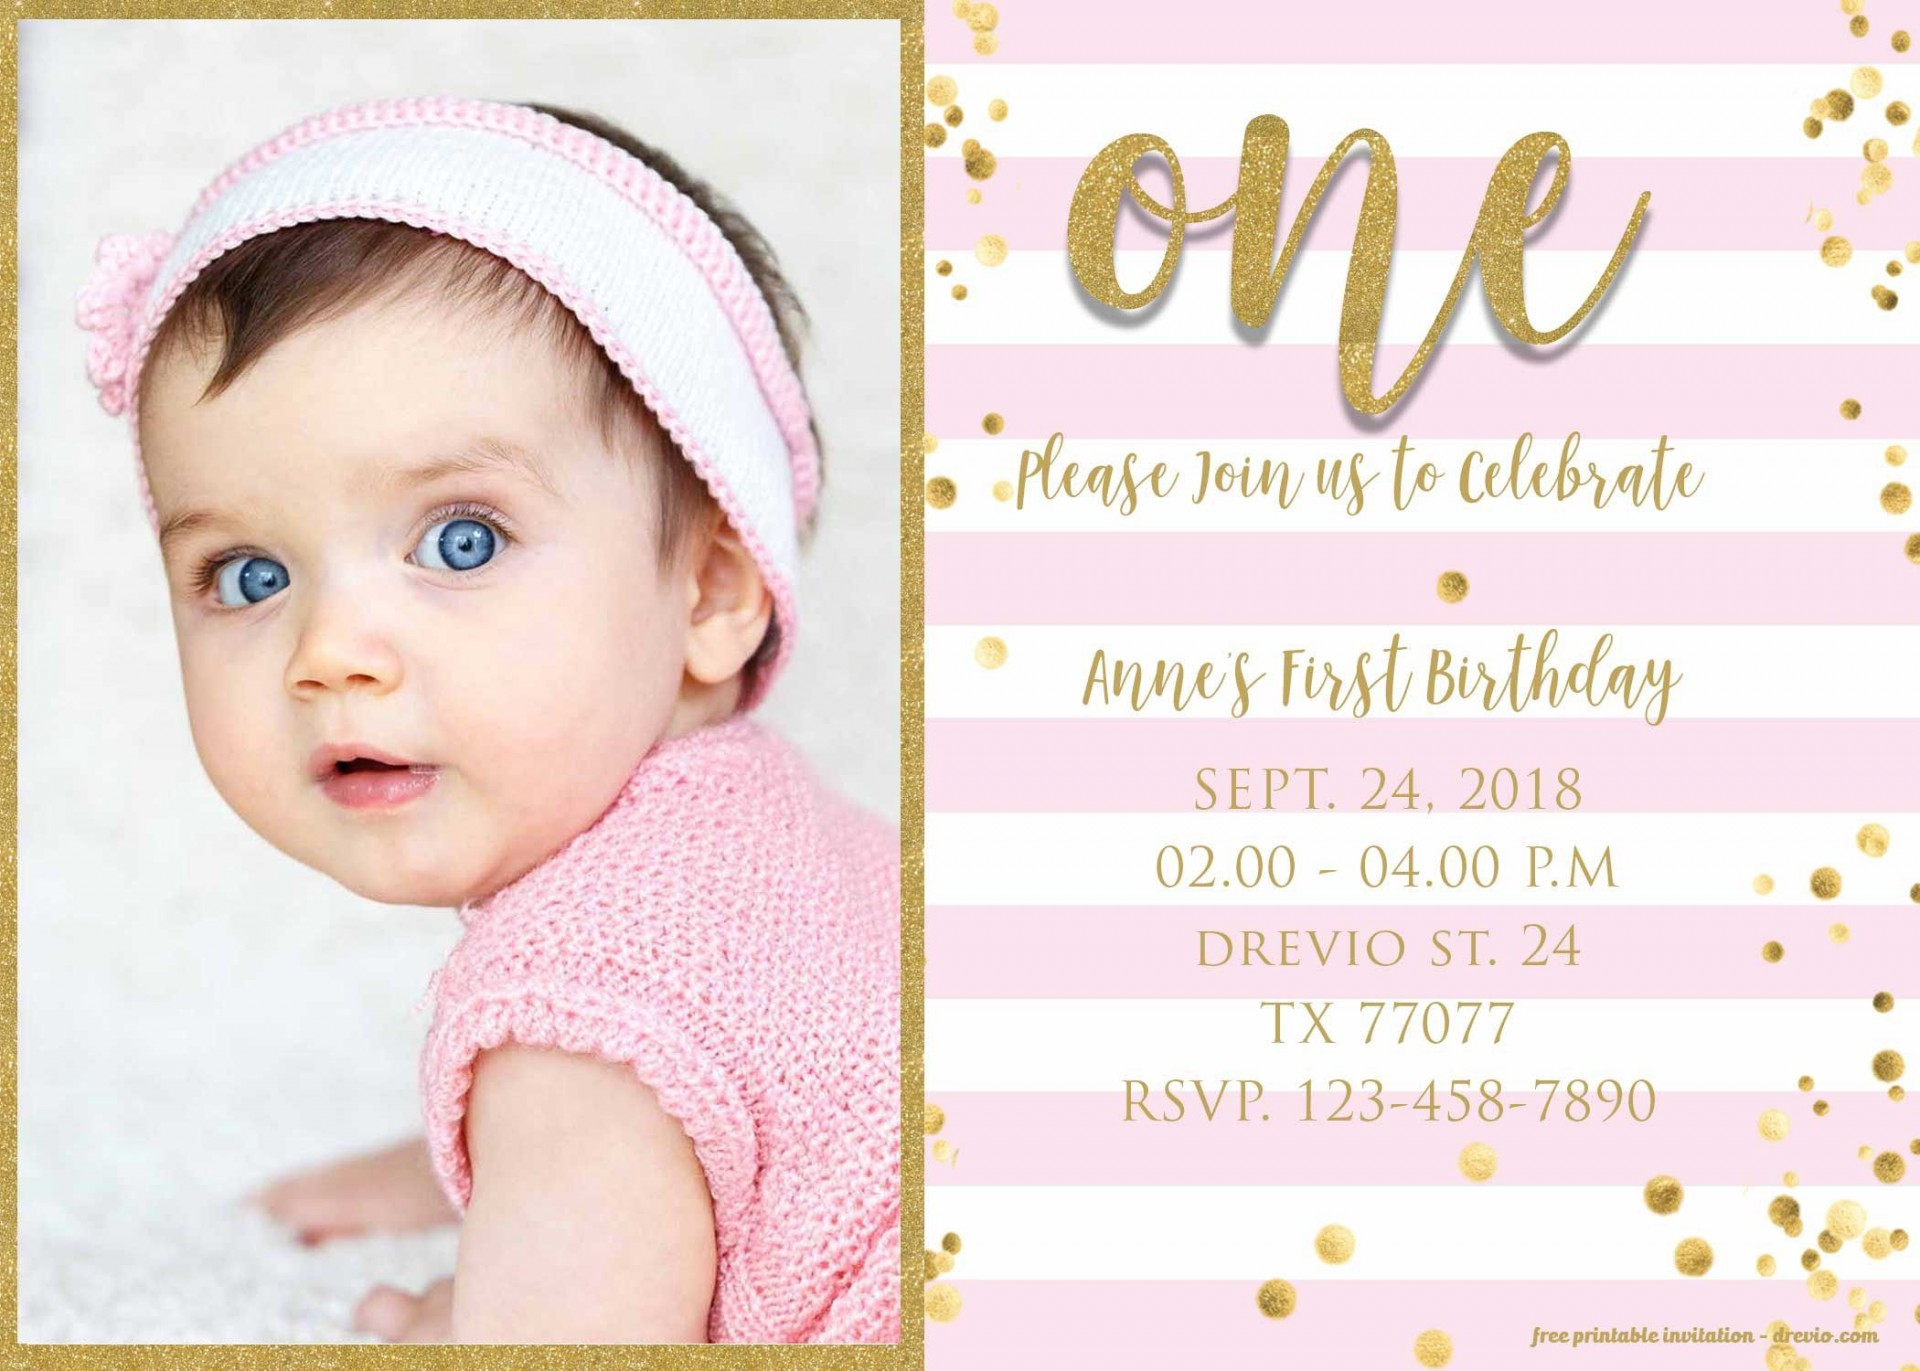 009 Magnificent 1st Birthday Invitation Template Concept  Background Design Blank For Girl First Baby Boy Free Download Indian1920